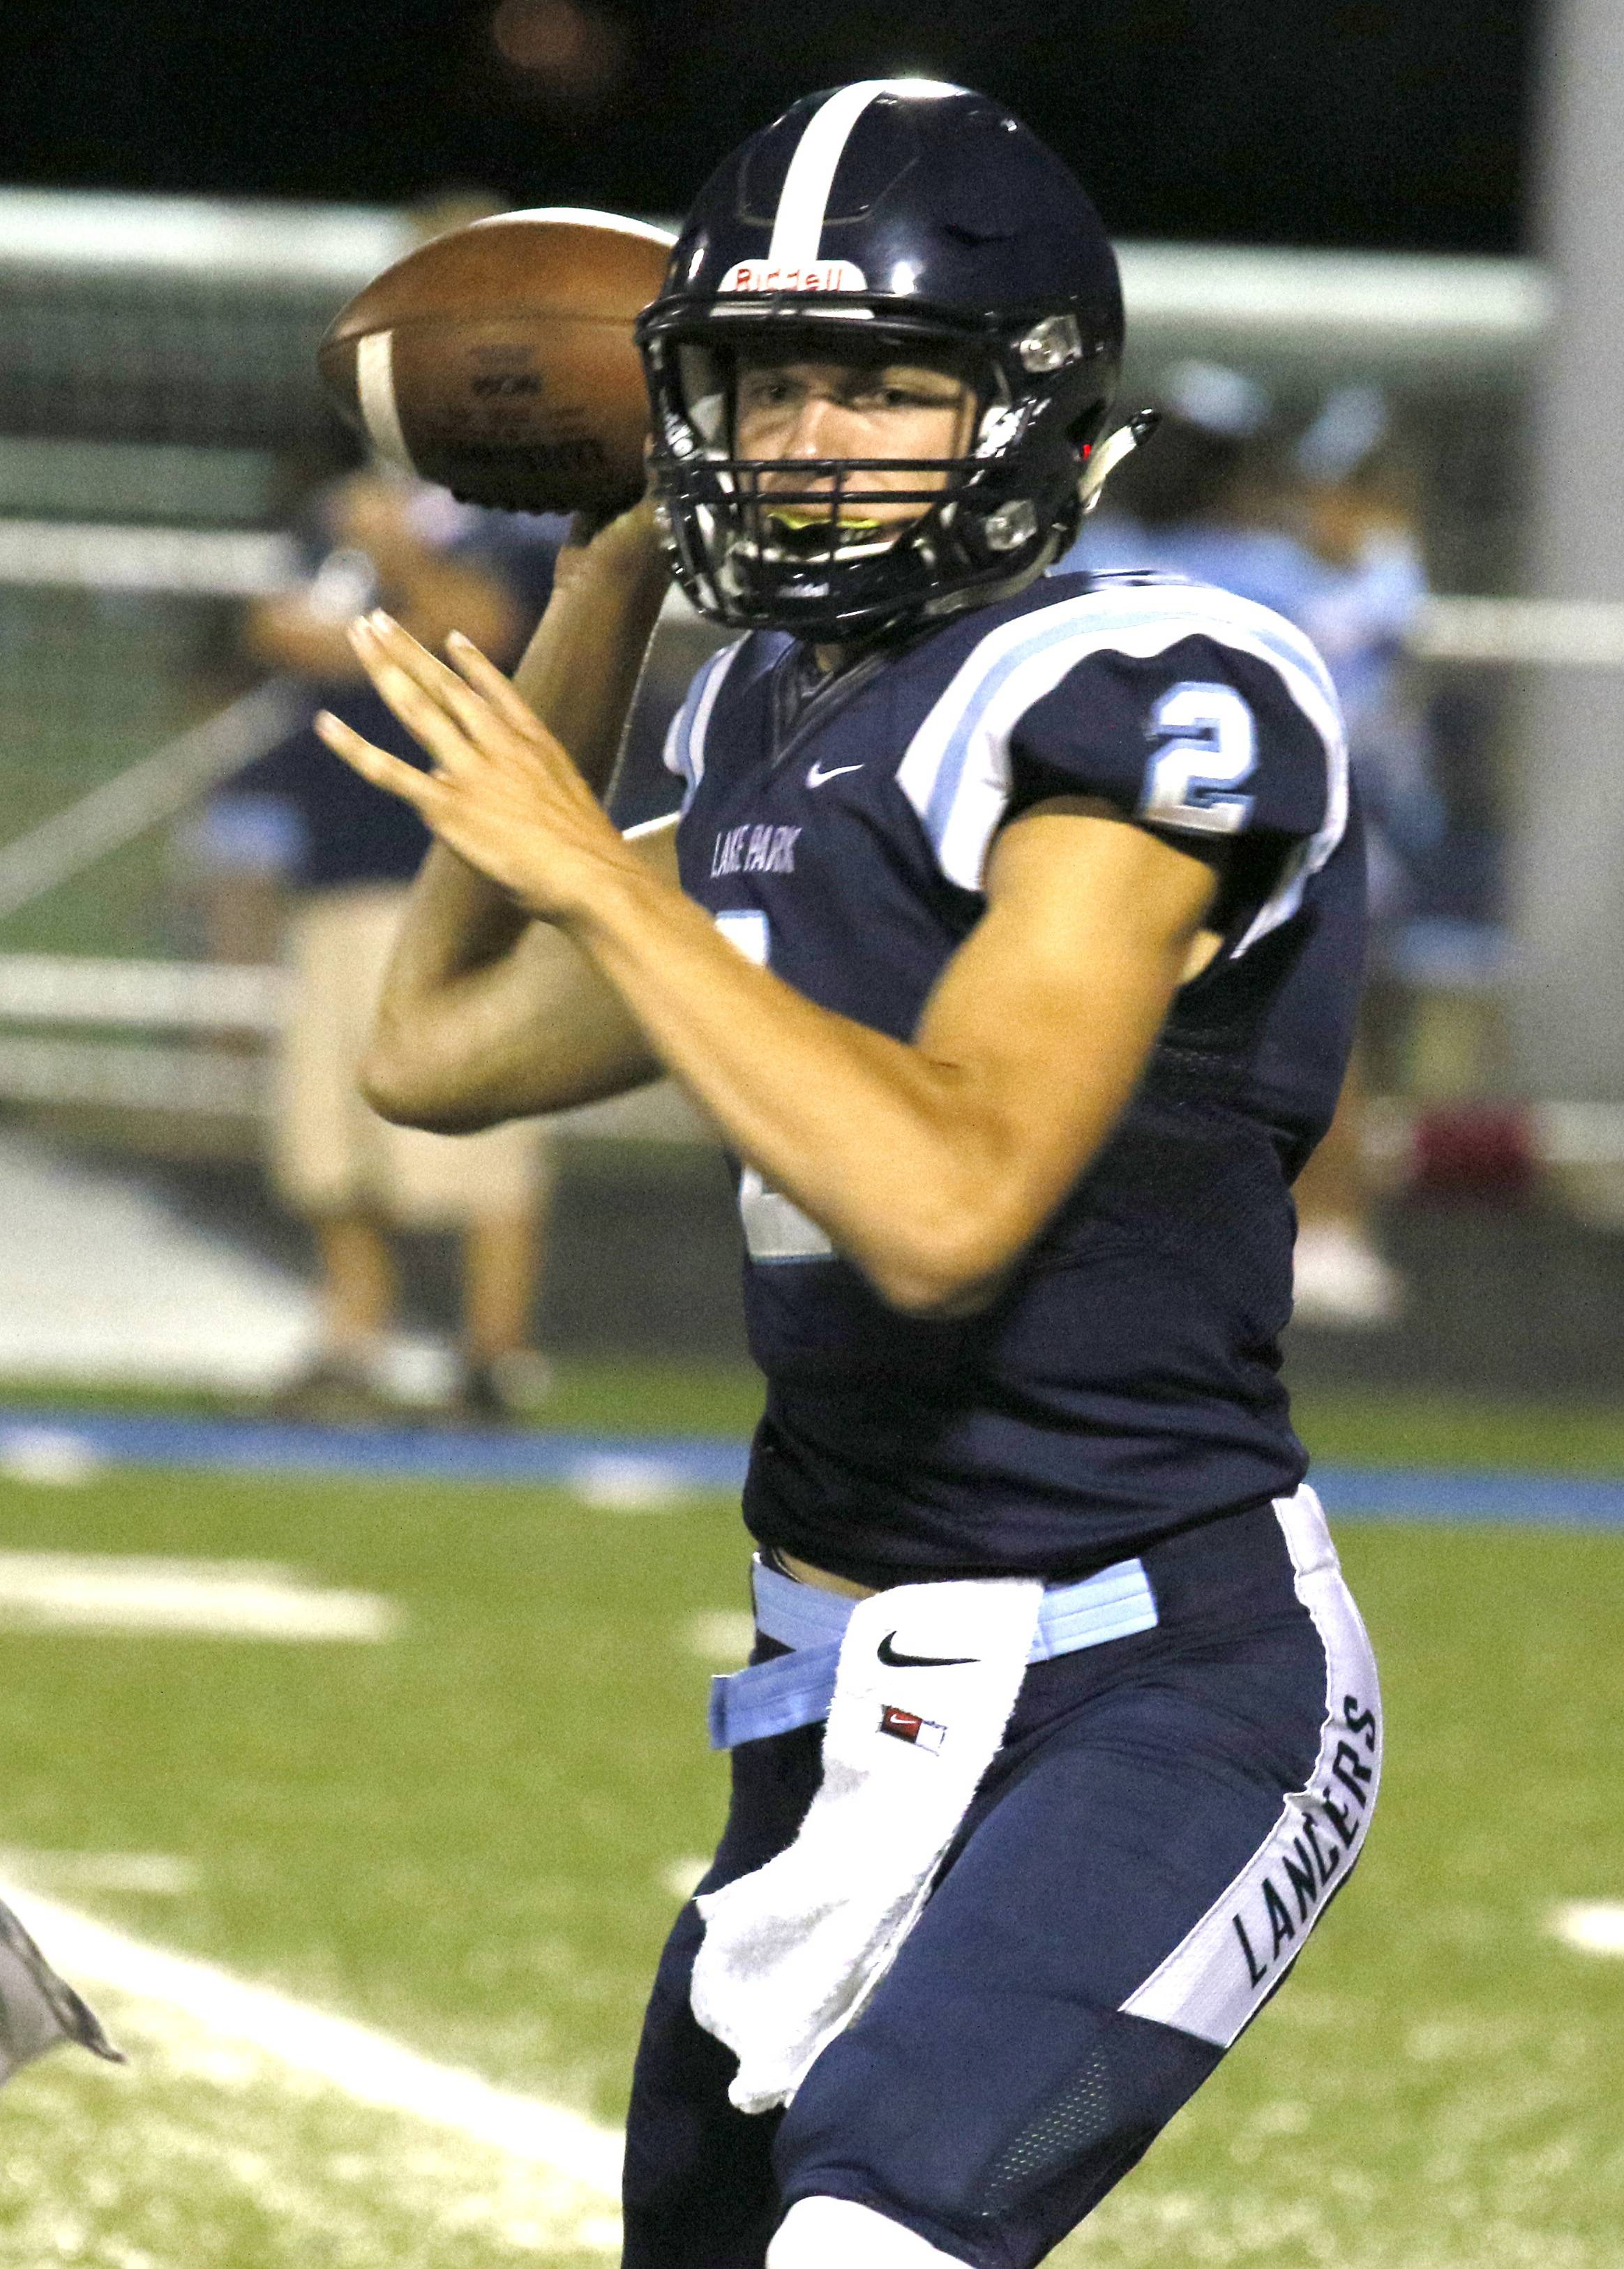 Lake Park quarterback Jackson Behles looks to pass against Waubonsie Valley during first half action.